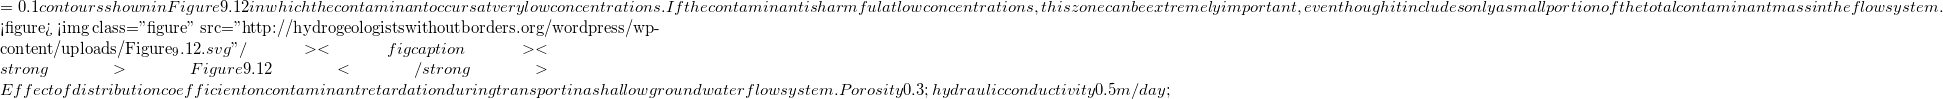 "= 0.1 contours shown in Figure 9.12 in which the contaminant occurs at very low concentrations. If the contaminant is harmful at low concentrations, this zone can be extremely important, even though it includes only a small portion of the total contaminant mass in the flow system.  <figure>   <img class=""figure"" src=""http://hydrogeologistswithoutborders.org/wordpress/wp-content/uploads/Figure_9.12.svg"" />   <figcaption><strong>Figure 9.12</strong> Effect of distribution coefficient on contaminant retardation during transport in a shallow groundwater flow system. Porosity 0.3&#59; hydraulic conductivity 0.5 m/day&#59;"